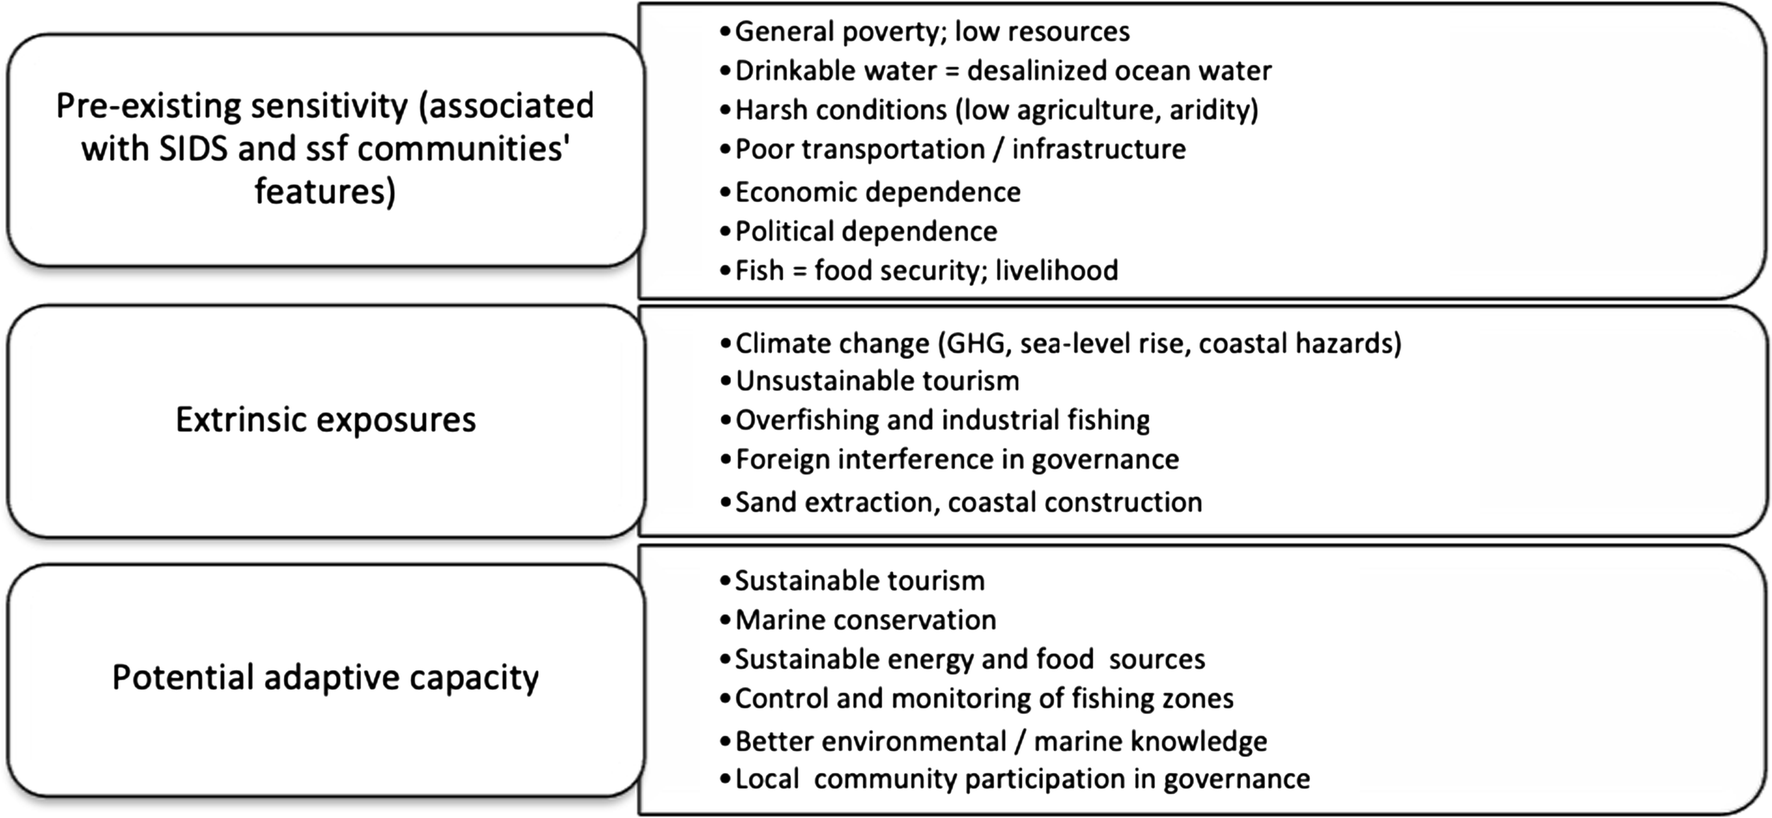 Growing vulnerability in the small-scale fishing communities